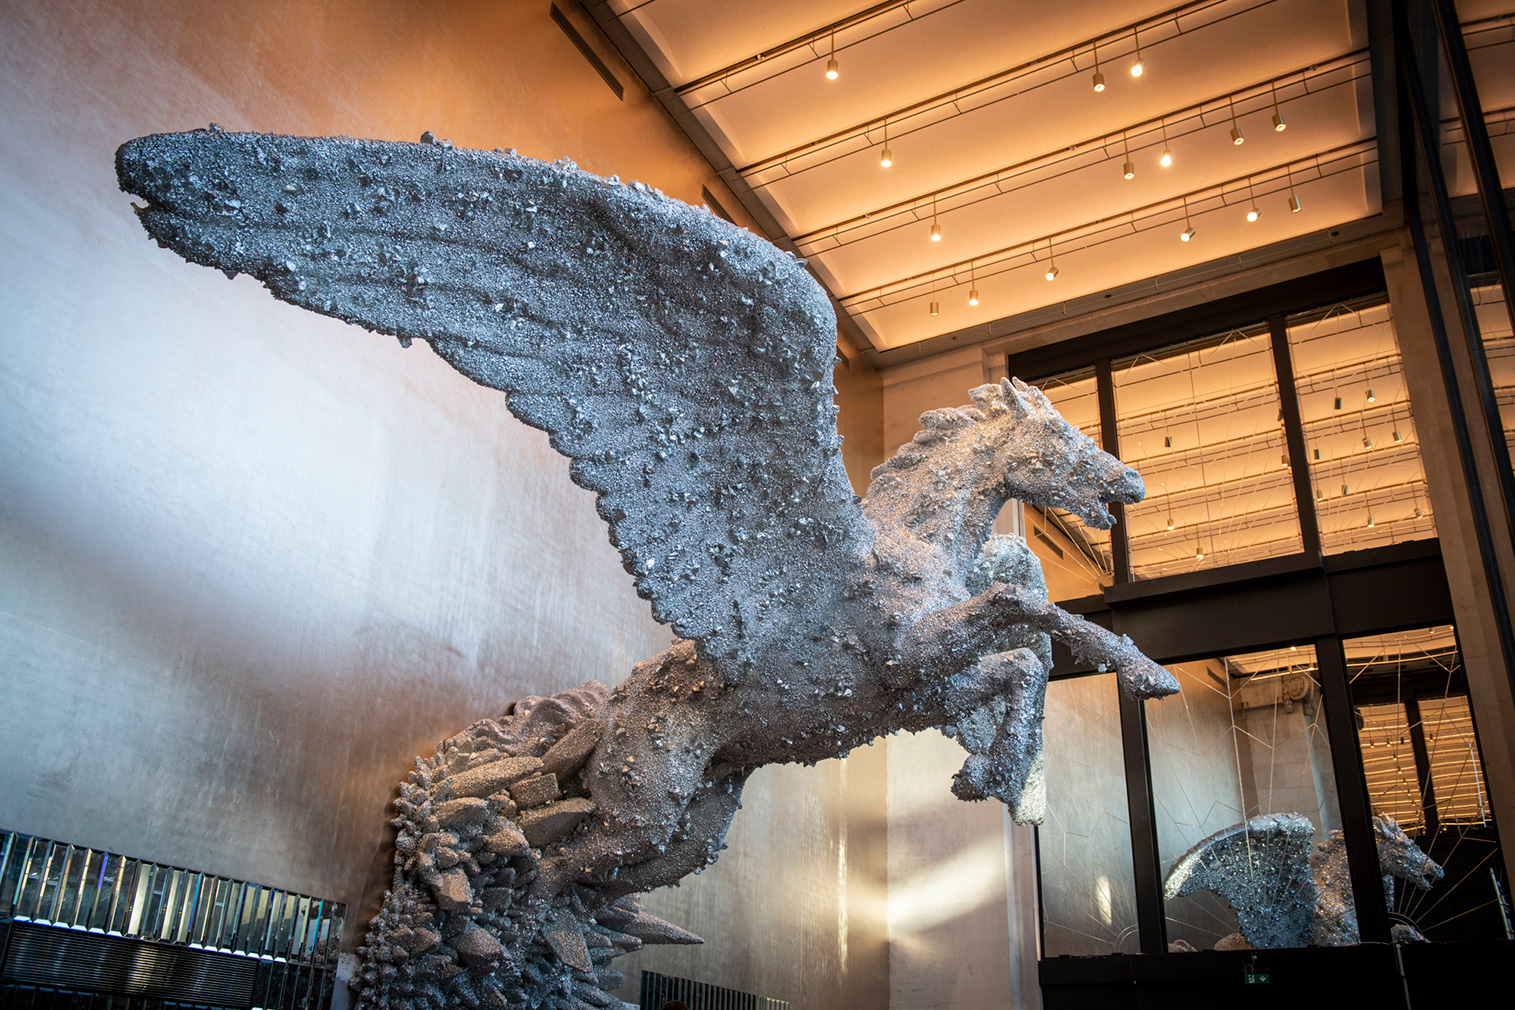 Selfridges' Brasserie of Light features a 24-ft-tall flying horse by Damien Hirst